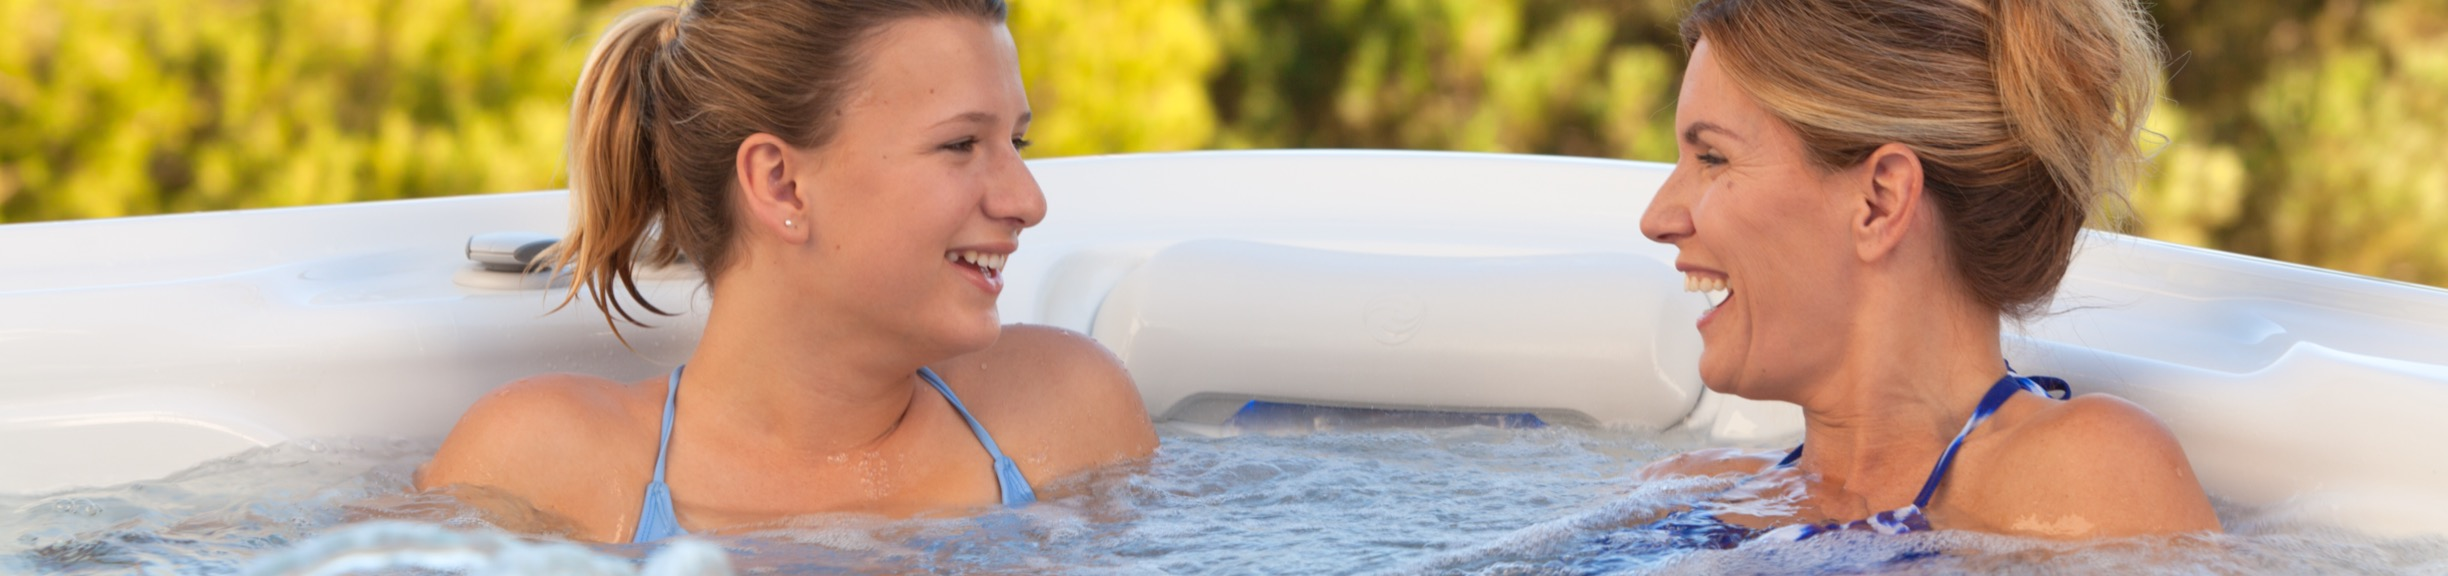 How a Hot Tub Can Help With Stress Management For Teens